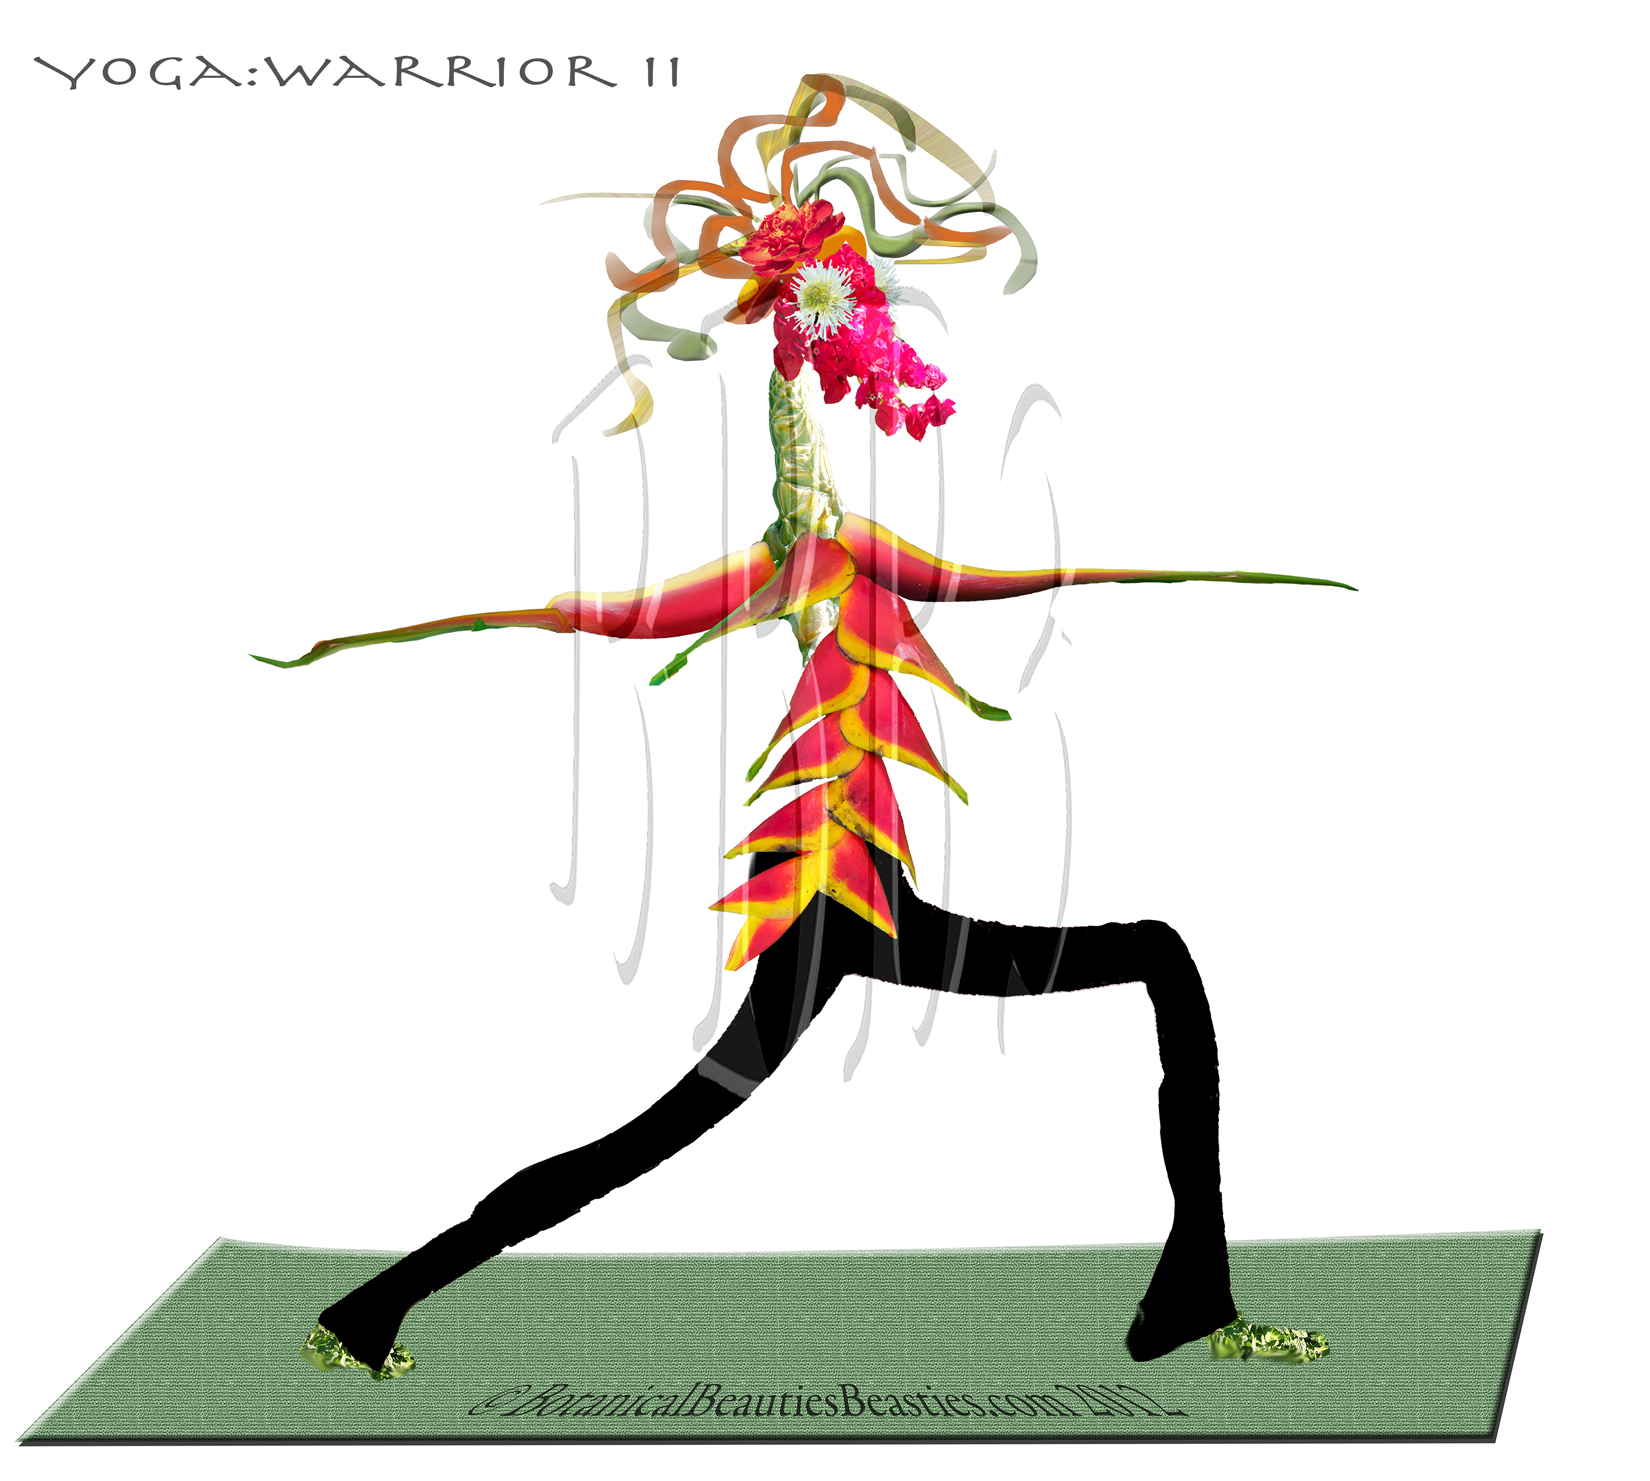 Grounding yoga poses Archives - Botanical Beauties & Beasties ©